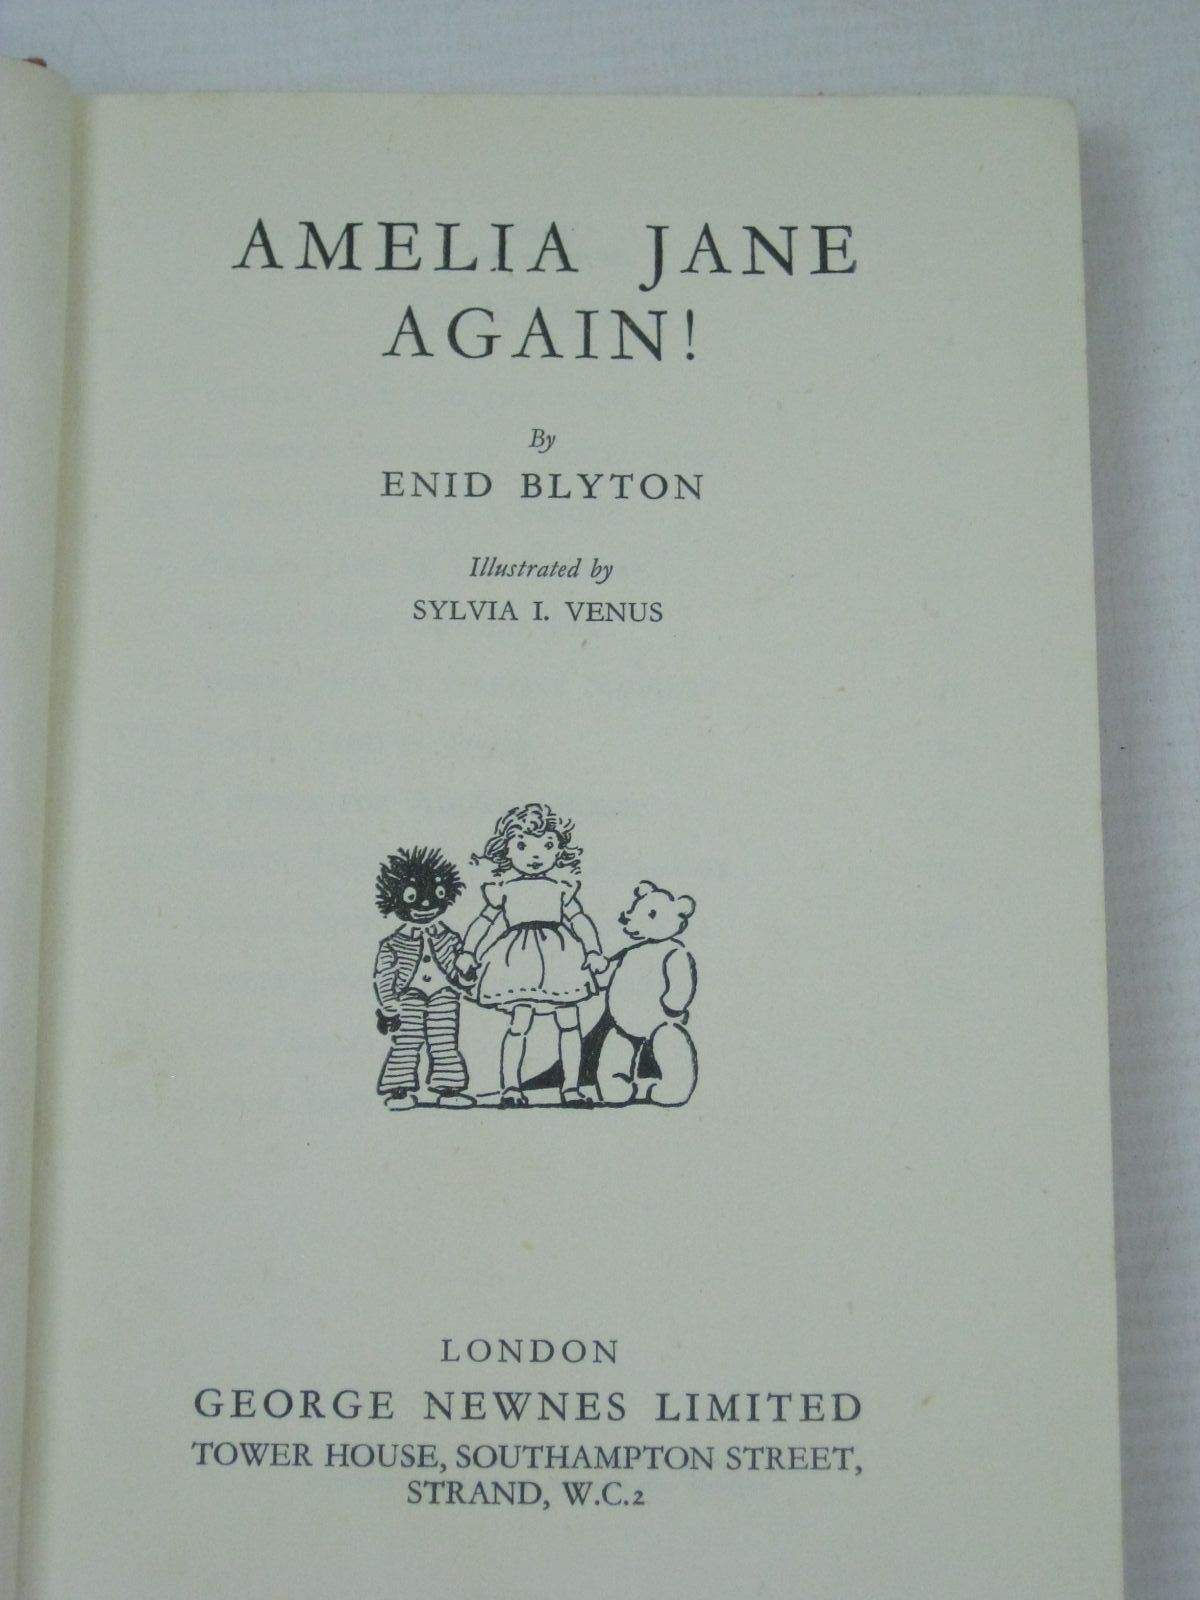 Photo of AMELIA JANE AGAIN written by Blyton, Enid illustrated by Venus, Sylvia published by George Newnes Ltd. (STOCK CODE: 1405858)  for sale by Stella & Rose's Books